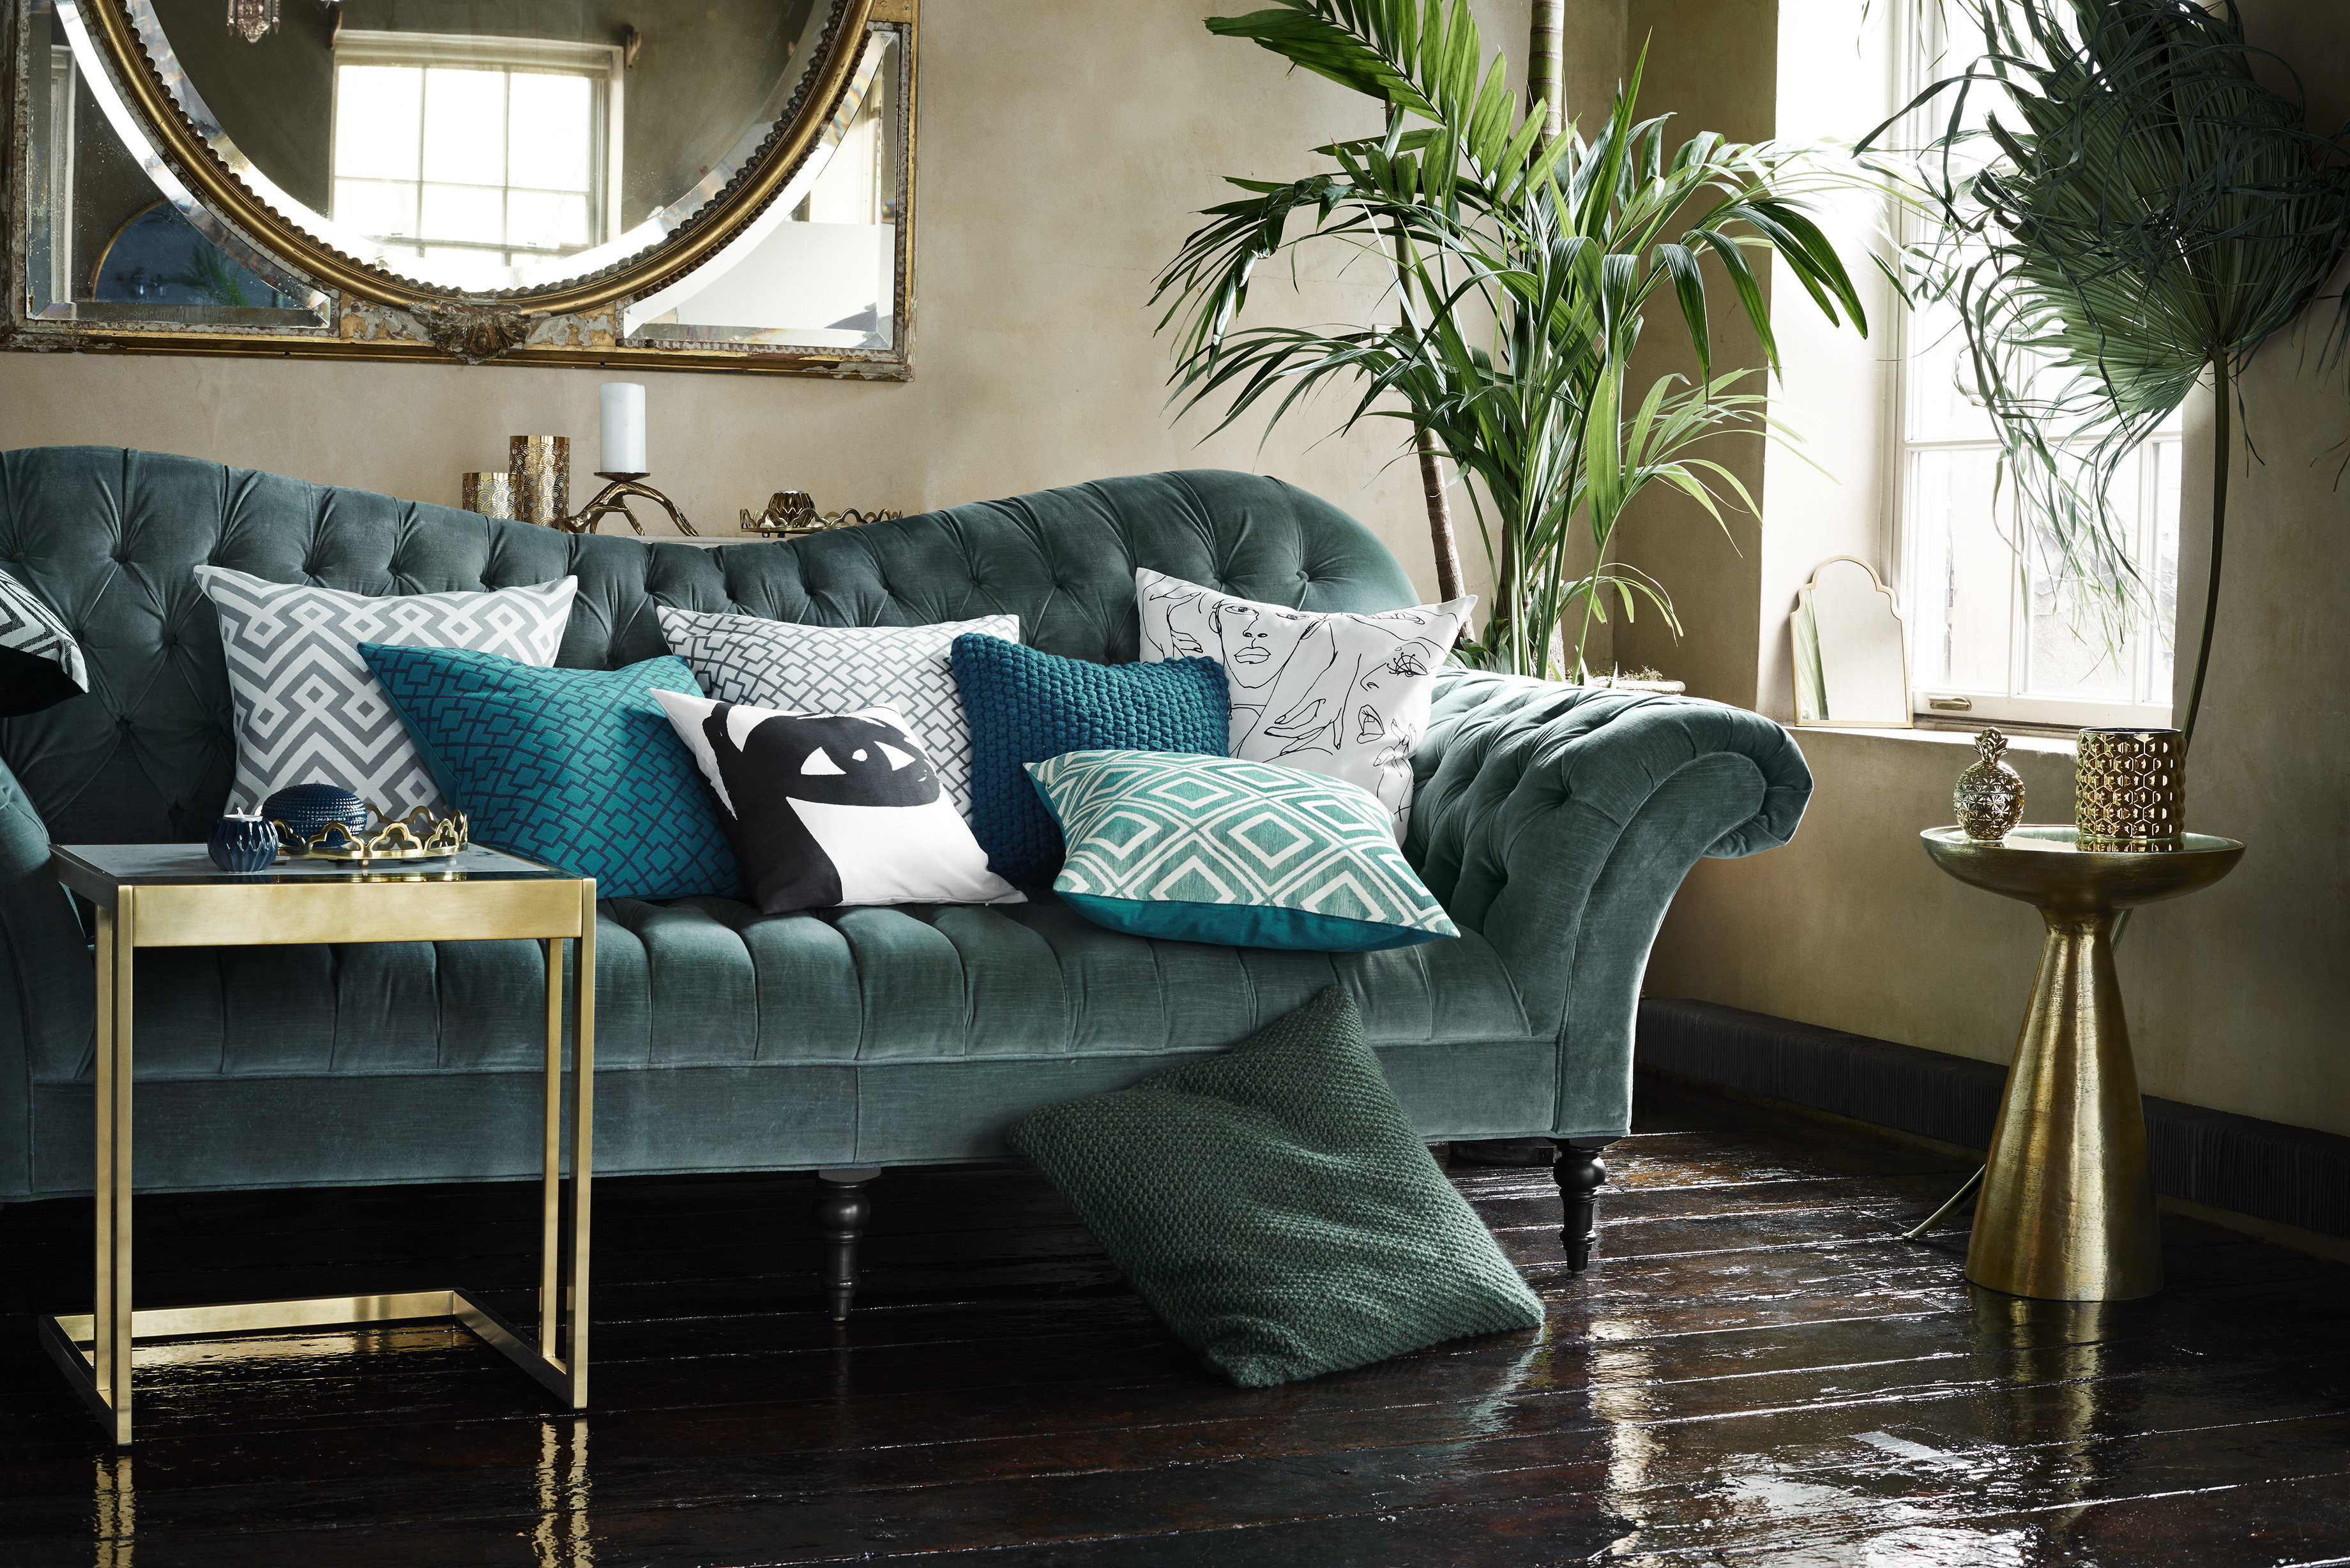 Plush hues of gray, teal, and green flirt with gold metal accents in H&M Home's Fall 2015 line. All photos courtesy of H&M Home.